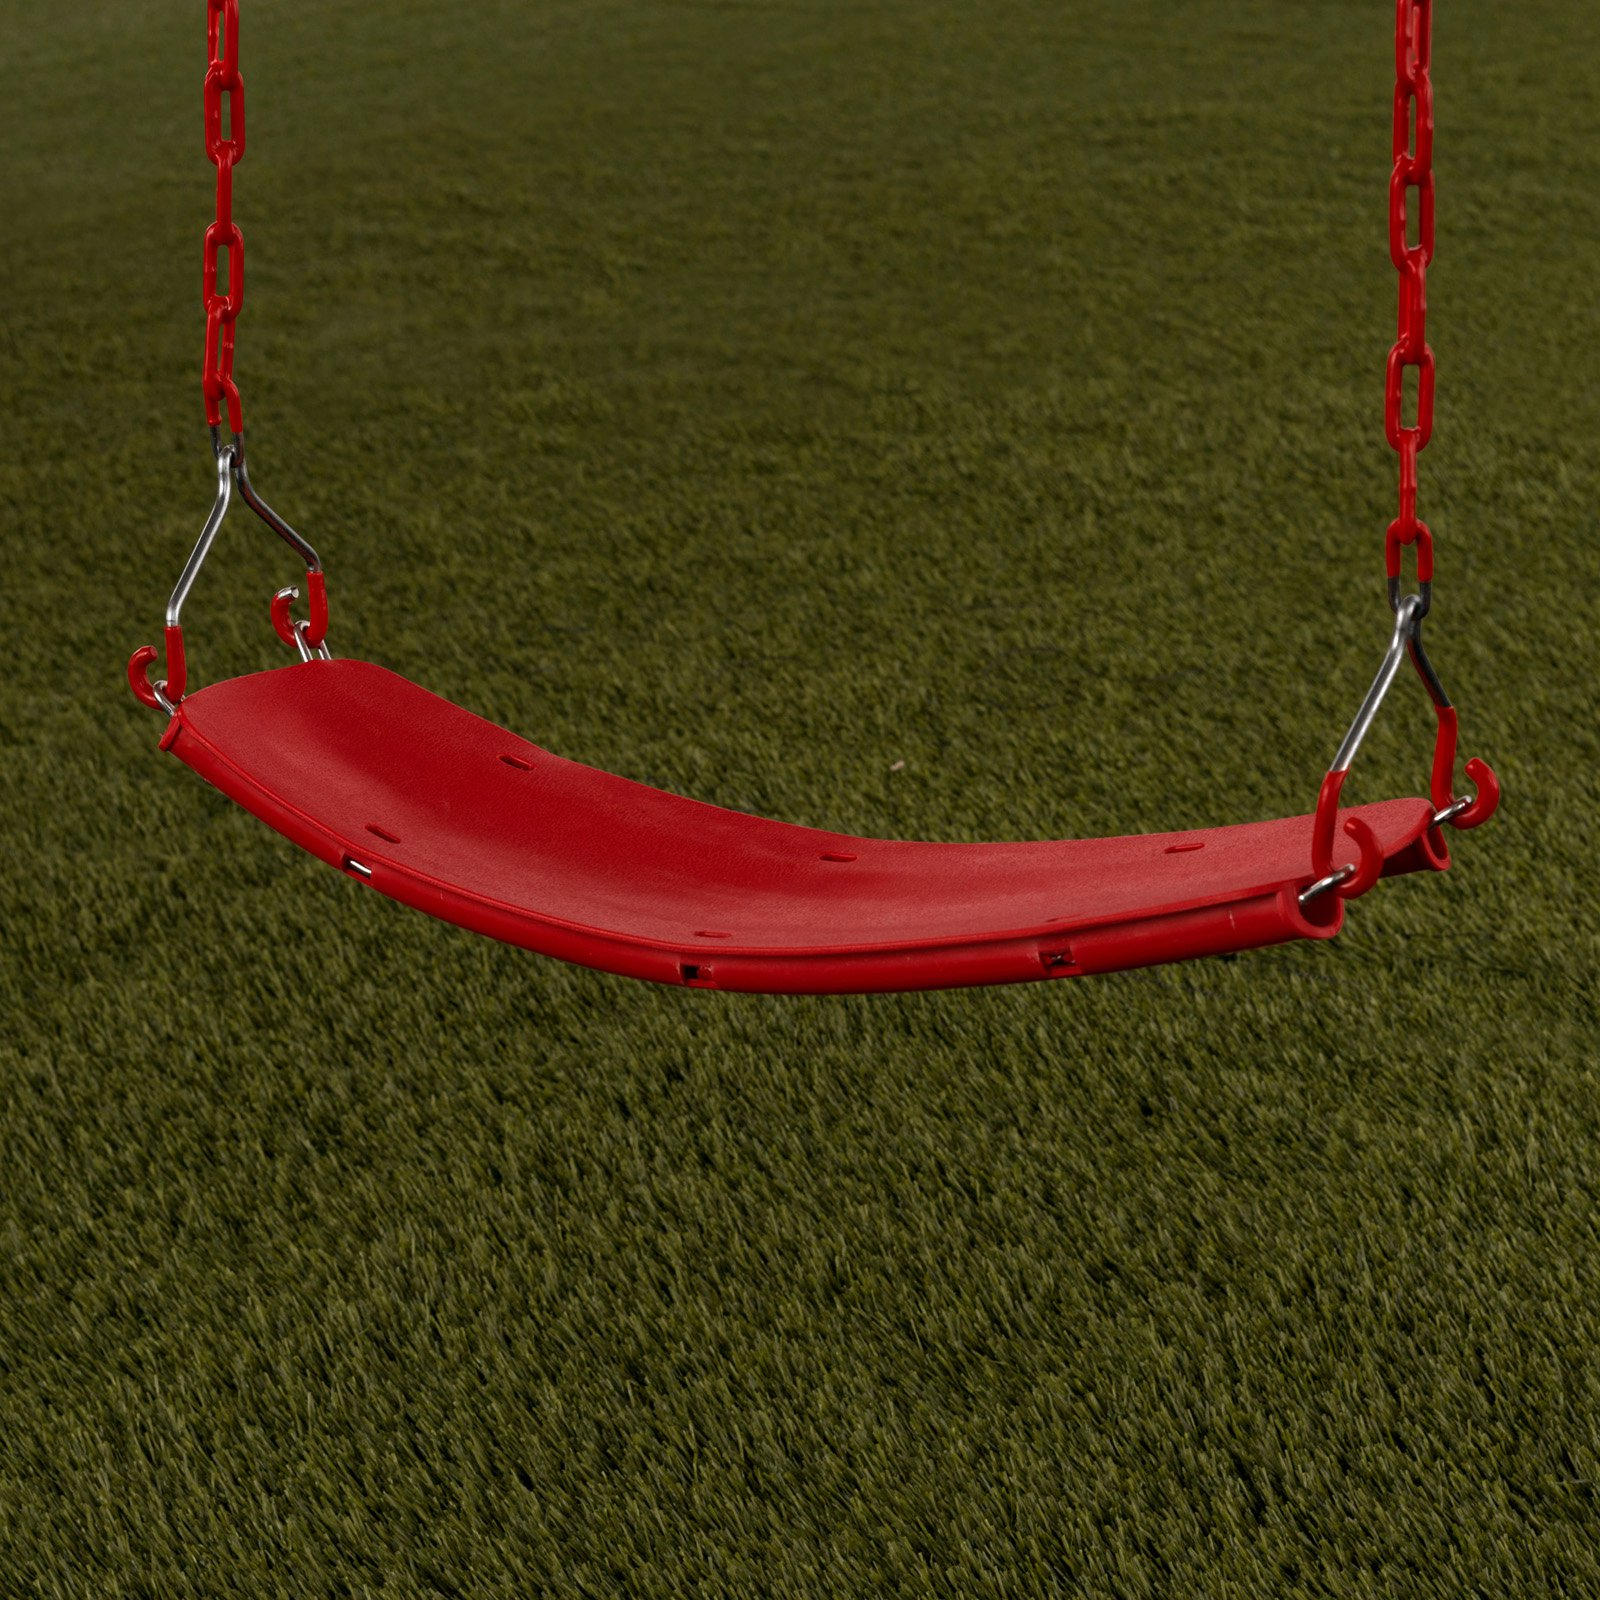 Creative Cedar Designs Beginner Swing Seat w/Chains- Red